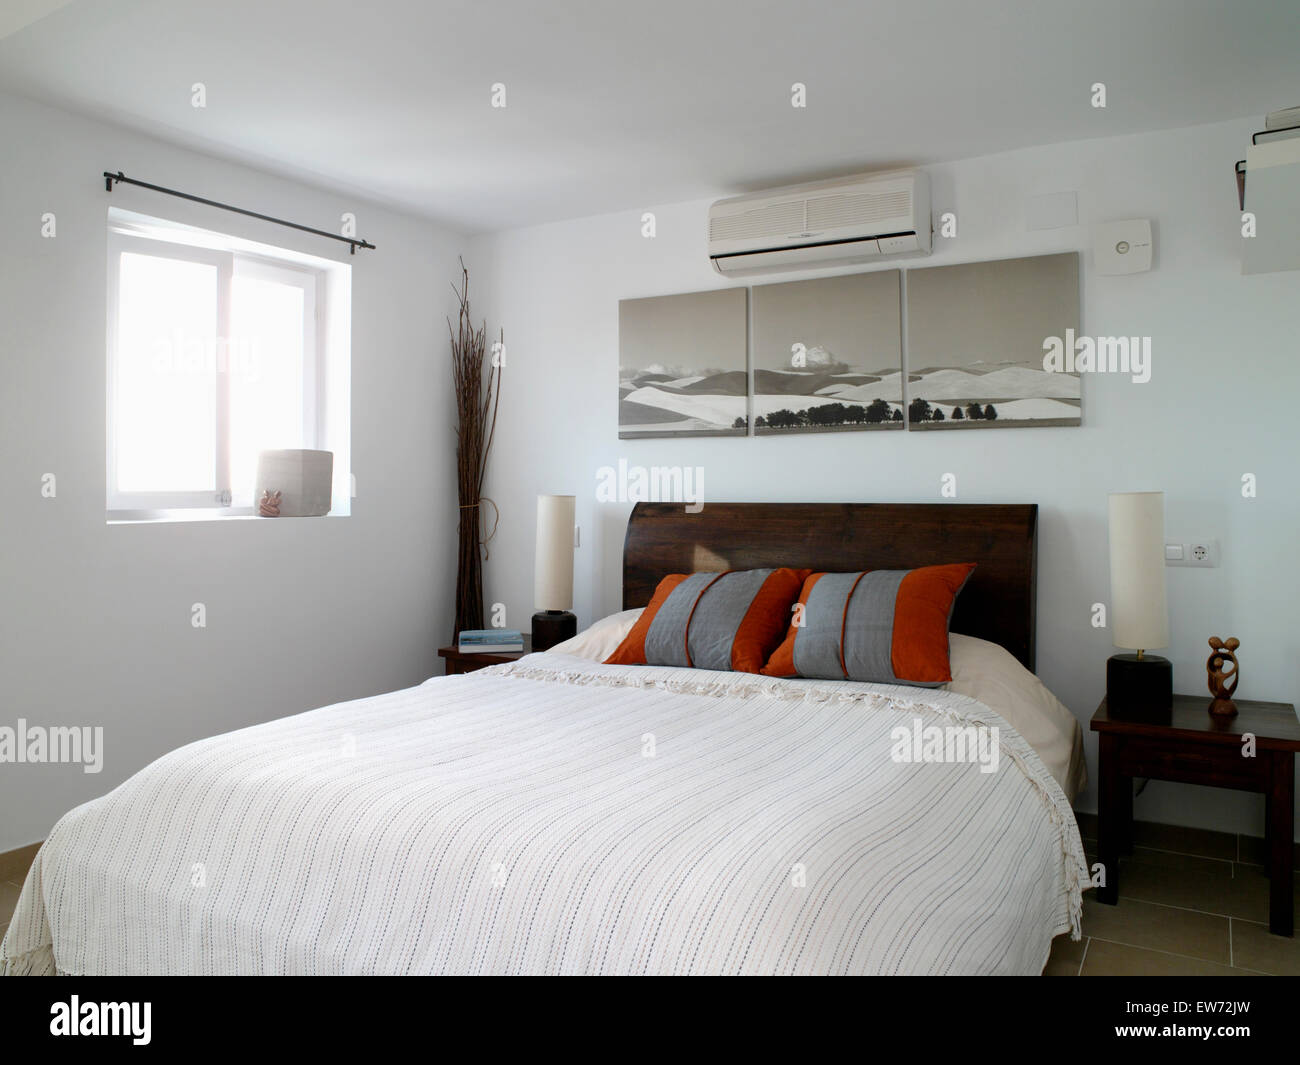 Air conditioning unit and large picture above bed with gray red cushions  and cream cover in modern bedroom. Air conditioning unit and large picture above bed with gray red